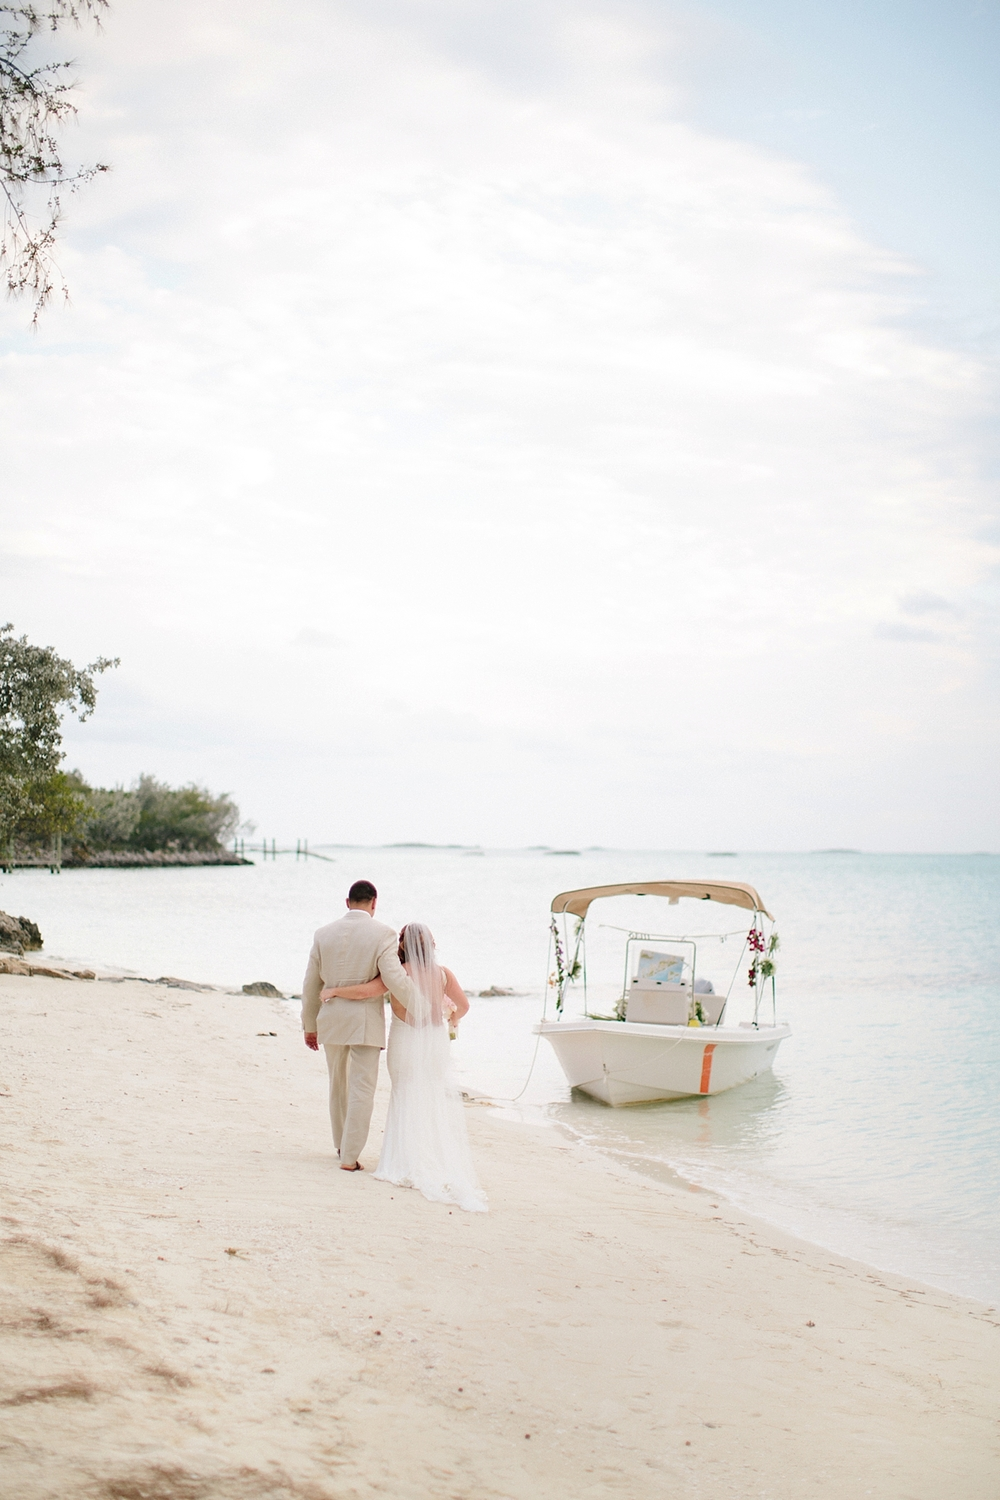 bahamas-destination-wedding-photographer-island-private-ceremony-staniel-cay_0030.jpg